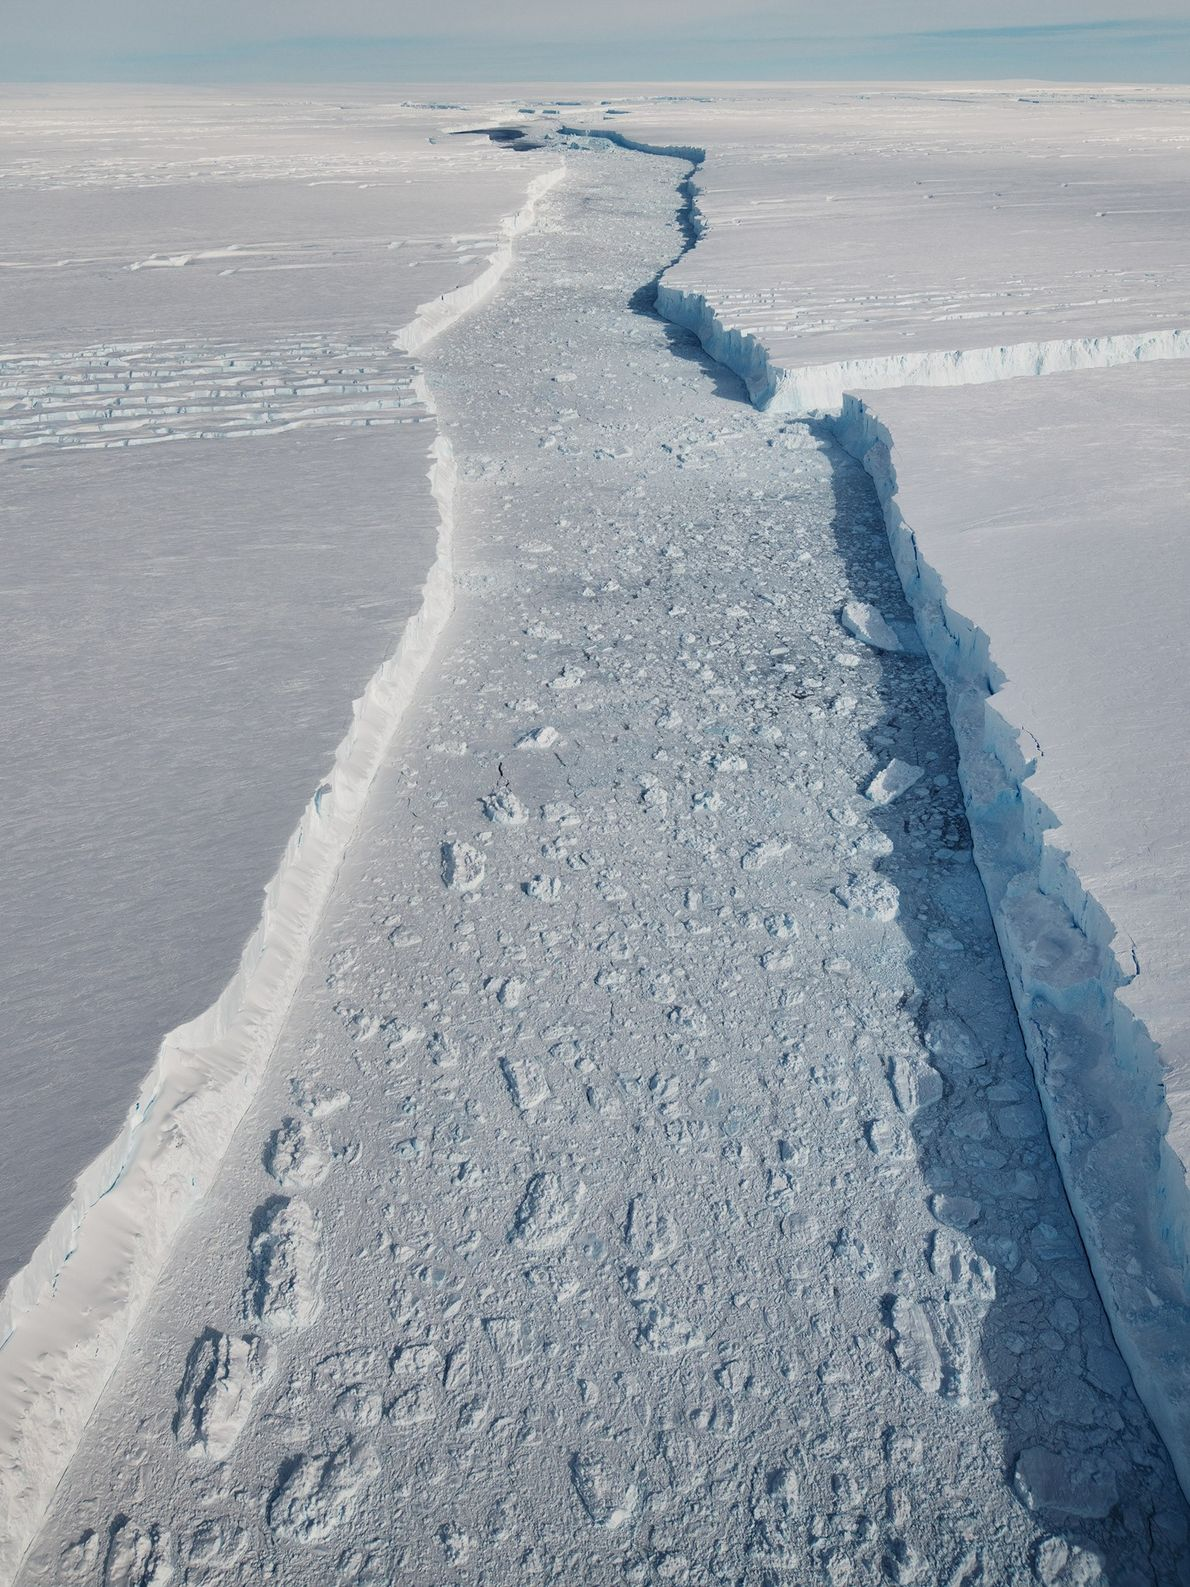 Another view of the main fissure between B-46 and the ice shelf.